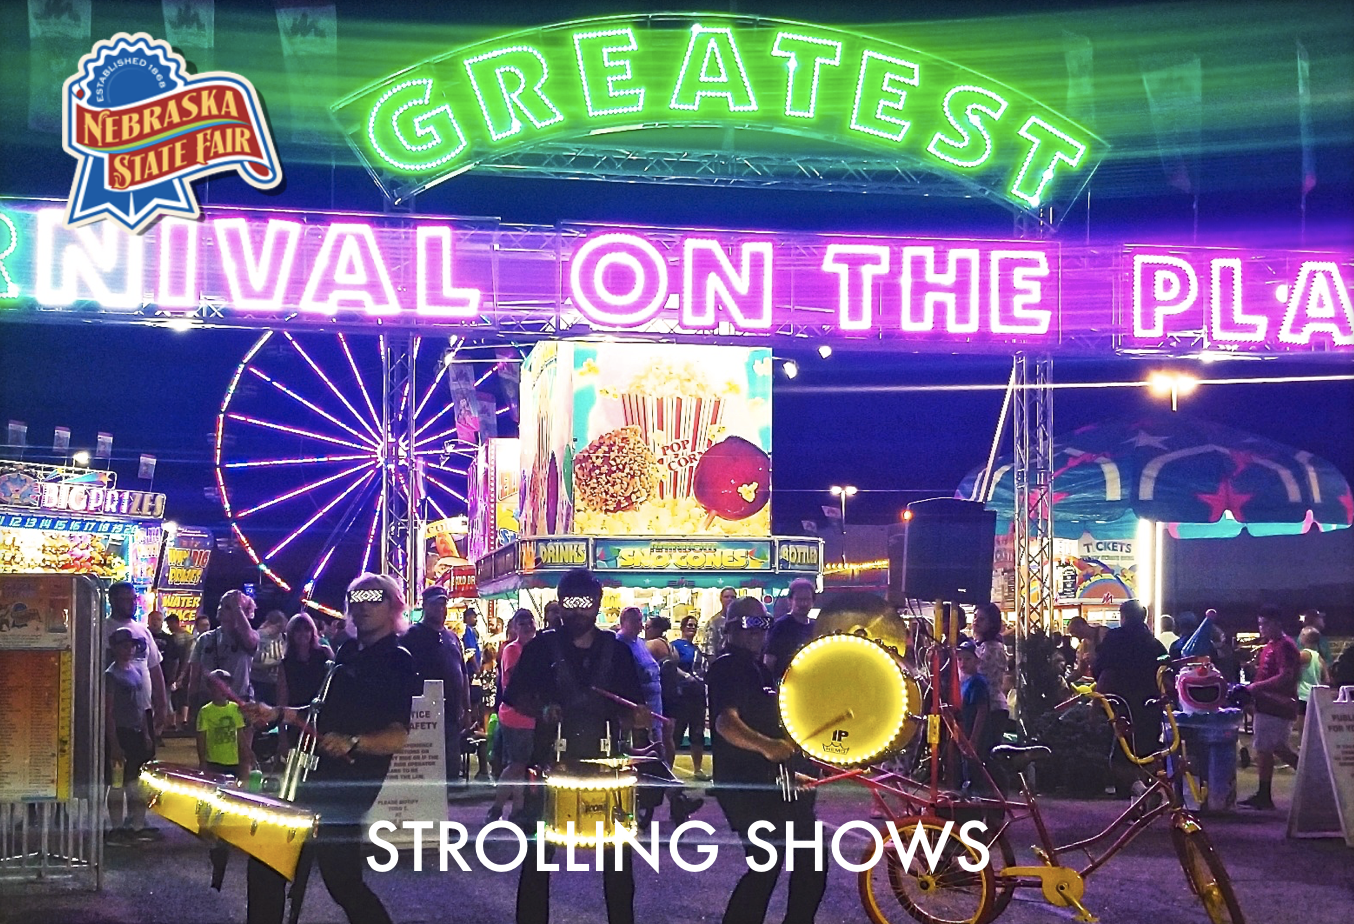 Fair Strolling Shows